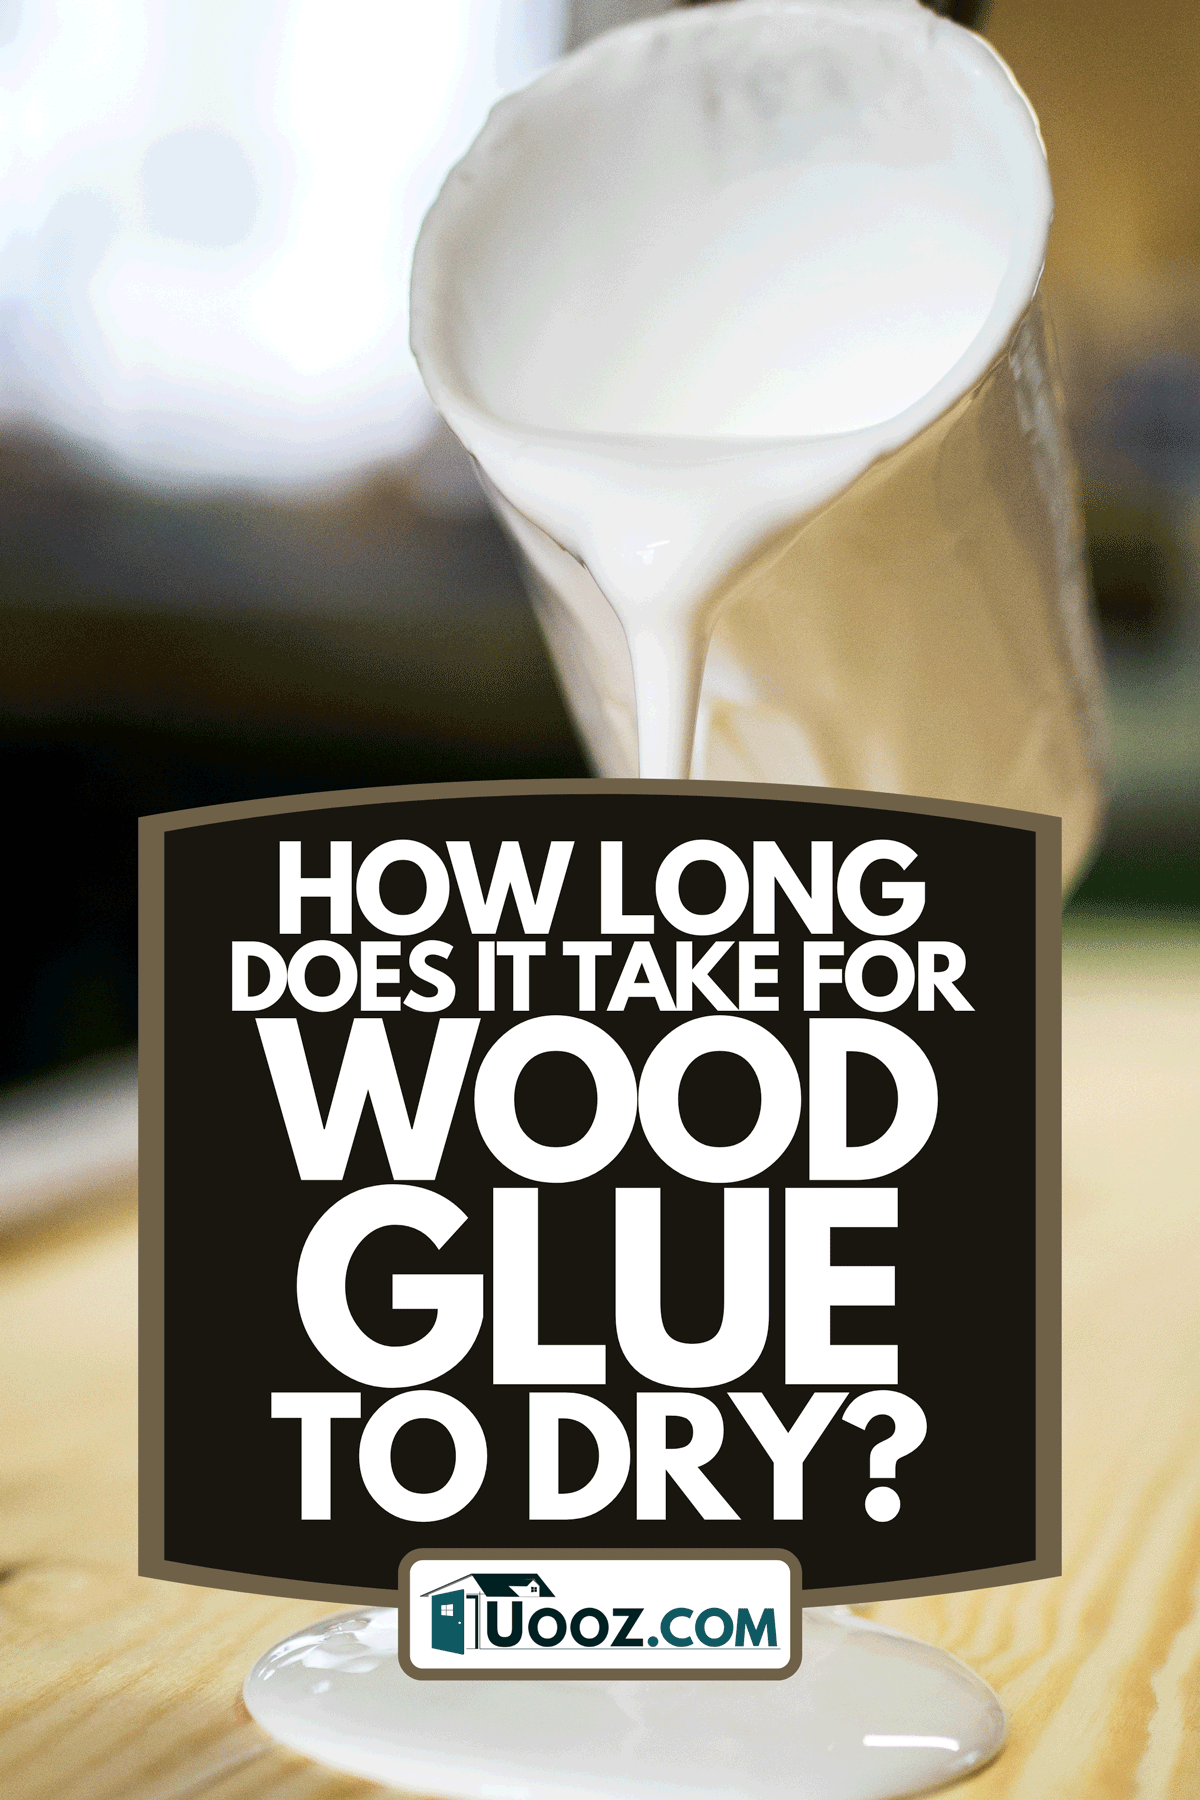 Carpenter uses spatula to distribute glue on a piece of wood in workshop, How Long Does It Take For Wood Glue To Dry?